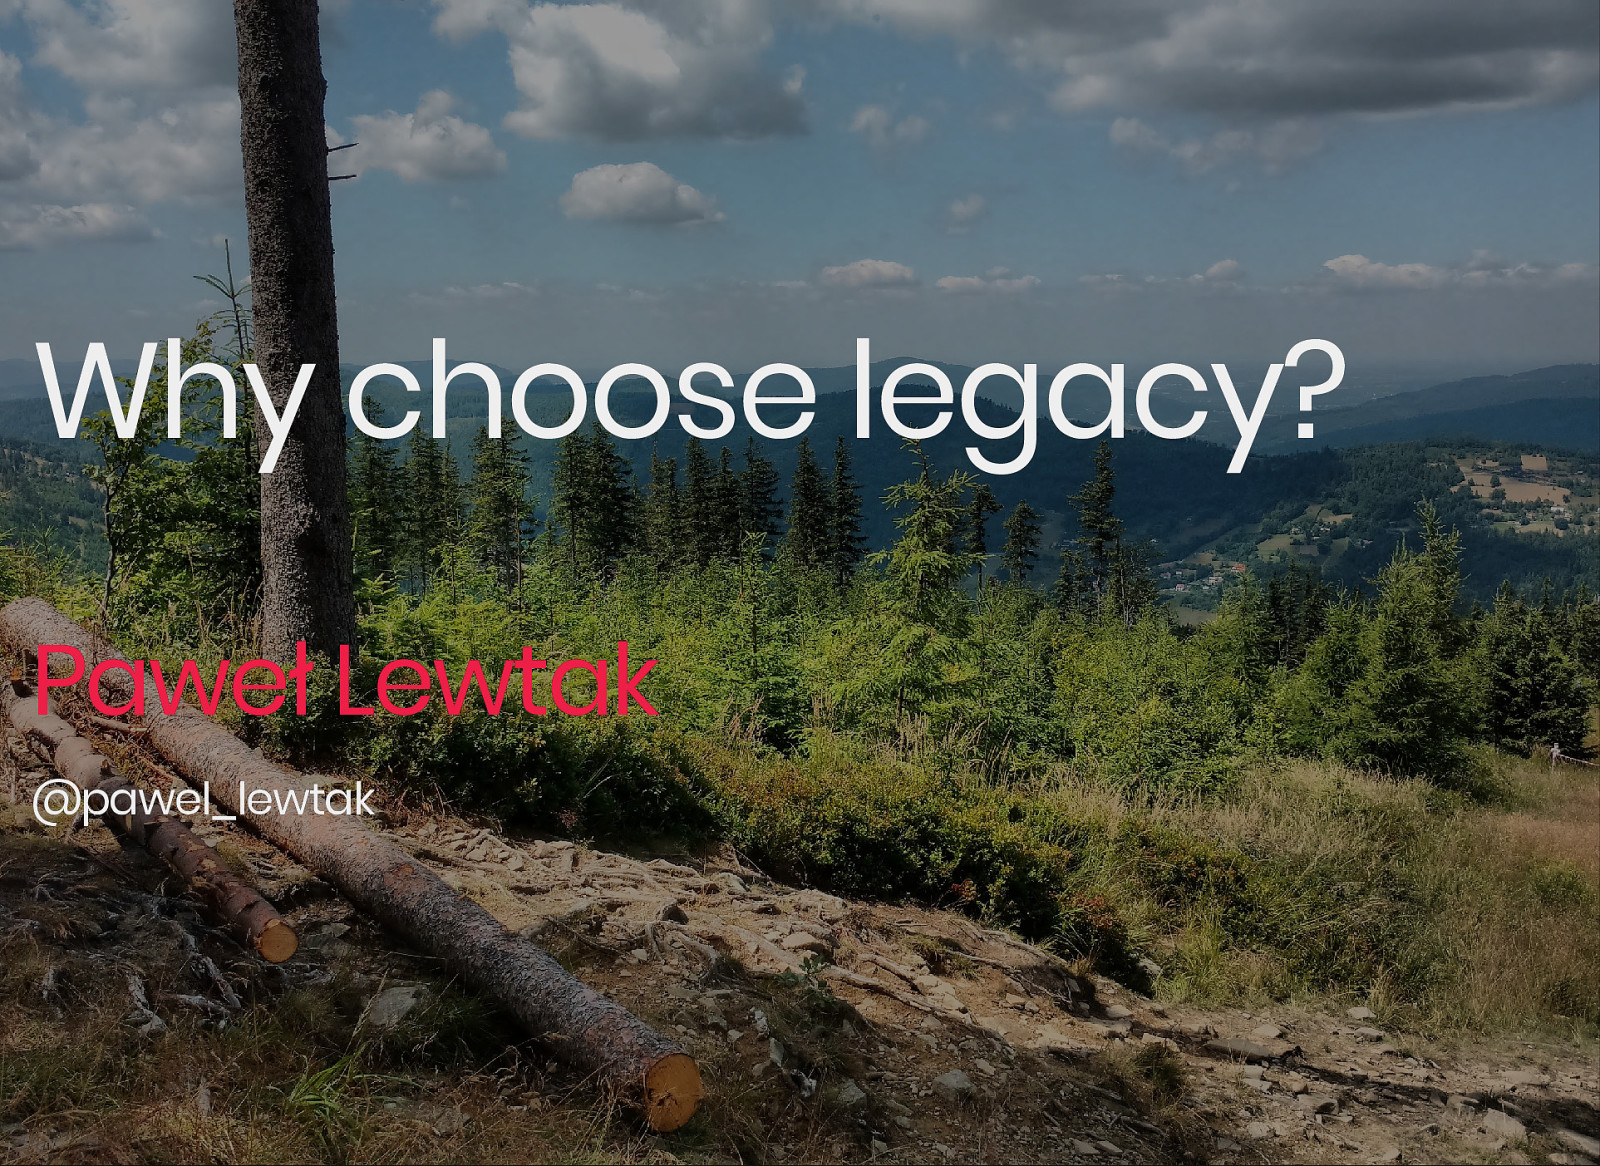 Why choose legacy?